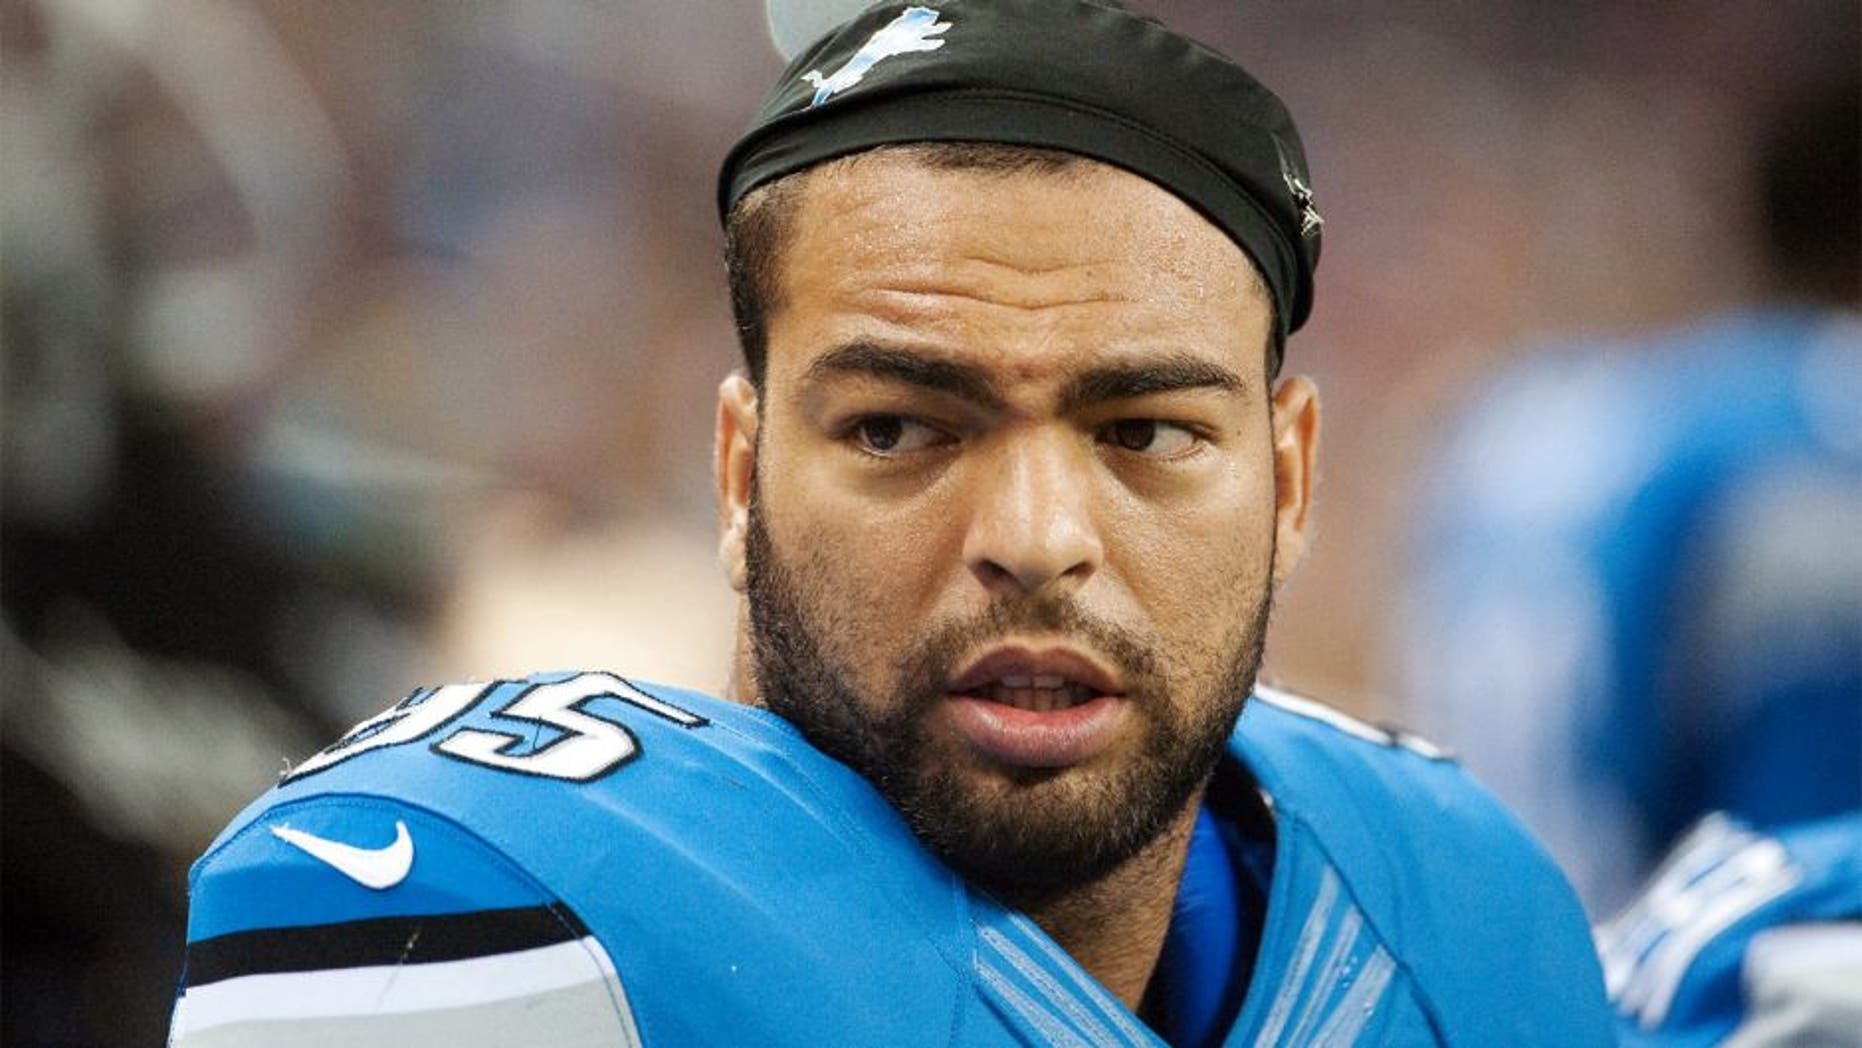 Aug 9, 2014; Detroit, MI, USA; Detroit Lions outside linebacker Kyle Van Noy (95) during the second quarter at Ford Field. Mandatory Credit: Tim Fuller-USA TODAY Sports